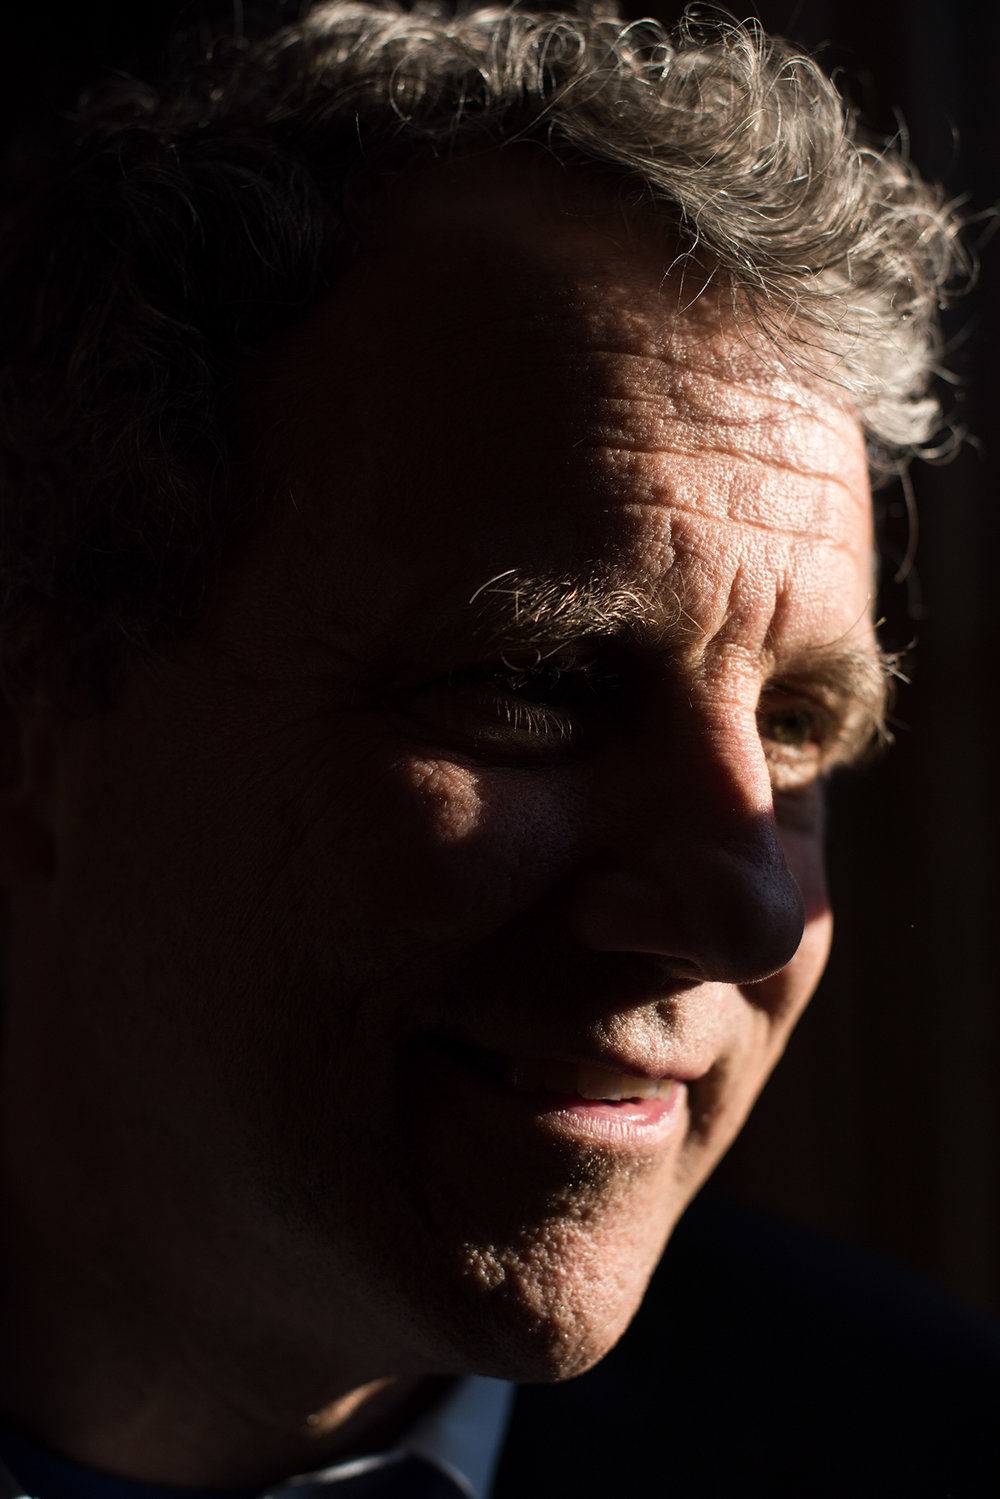 Ohio Senator Sherrod Brown. Photo by Dustin Franz